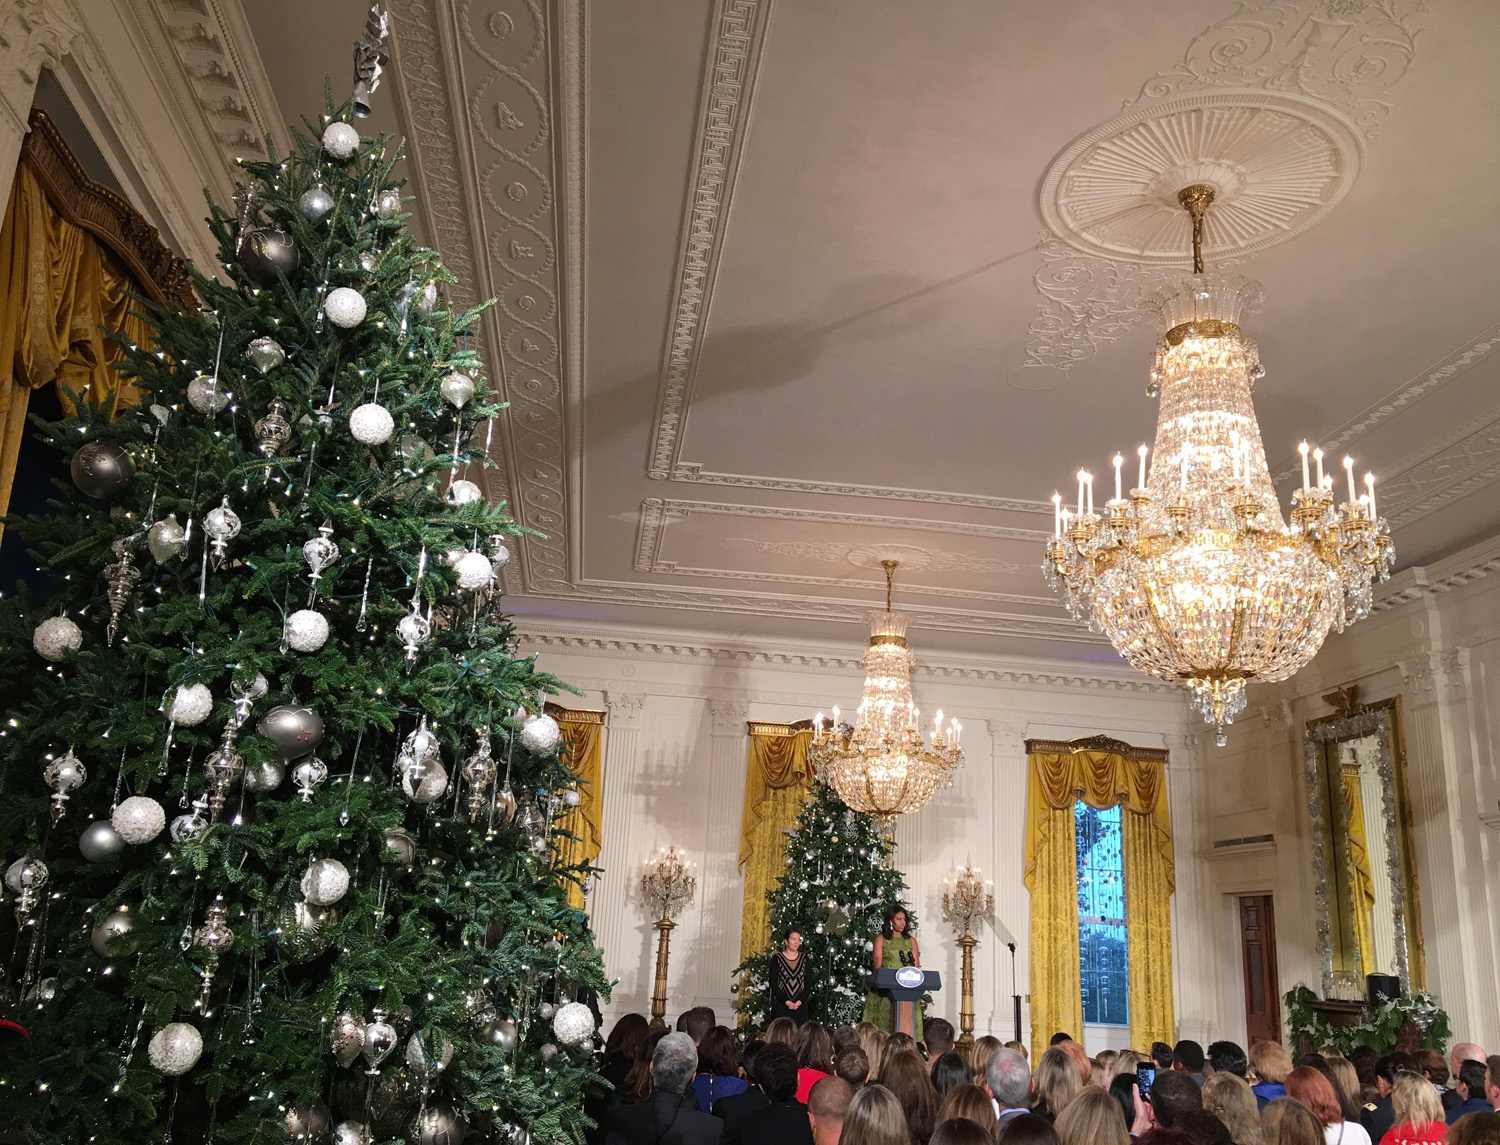 White house christmas ornaments by year - This Year 68 000 Guests Are Expected To Pass Through The White House And The Festivities Inside Should Not Disappoint